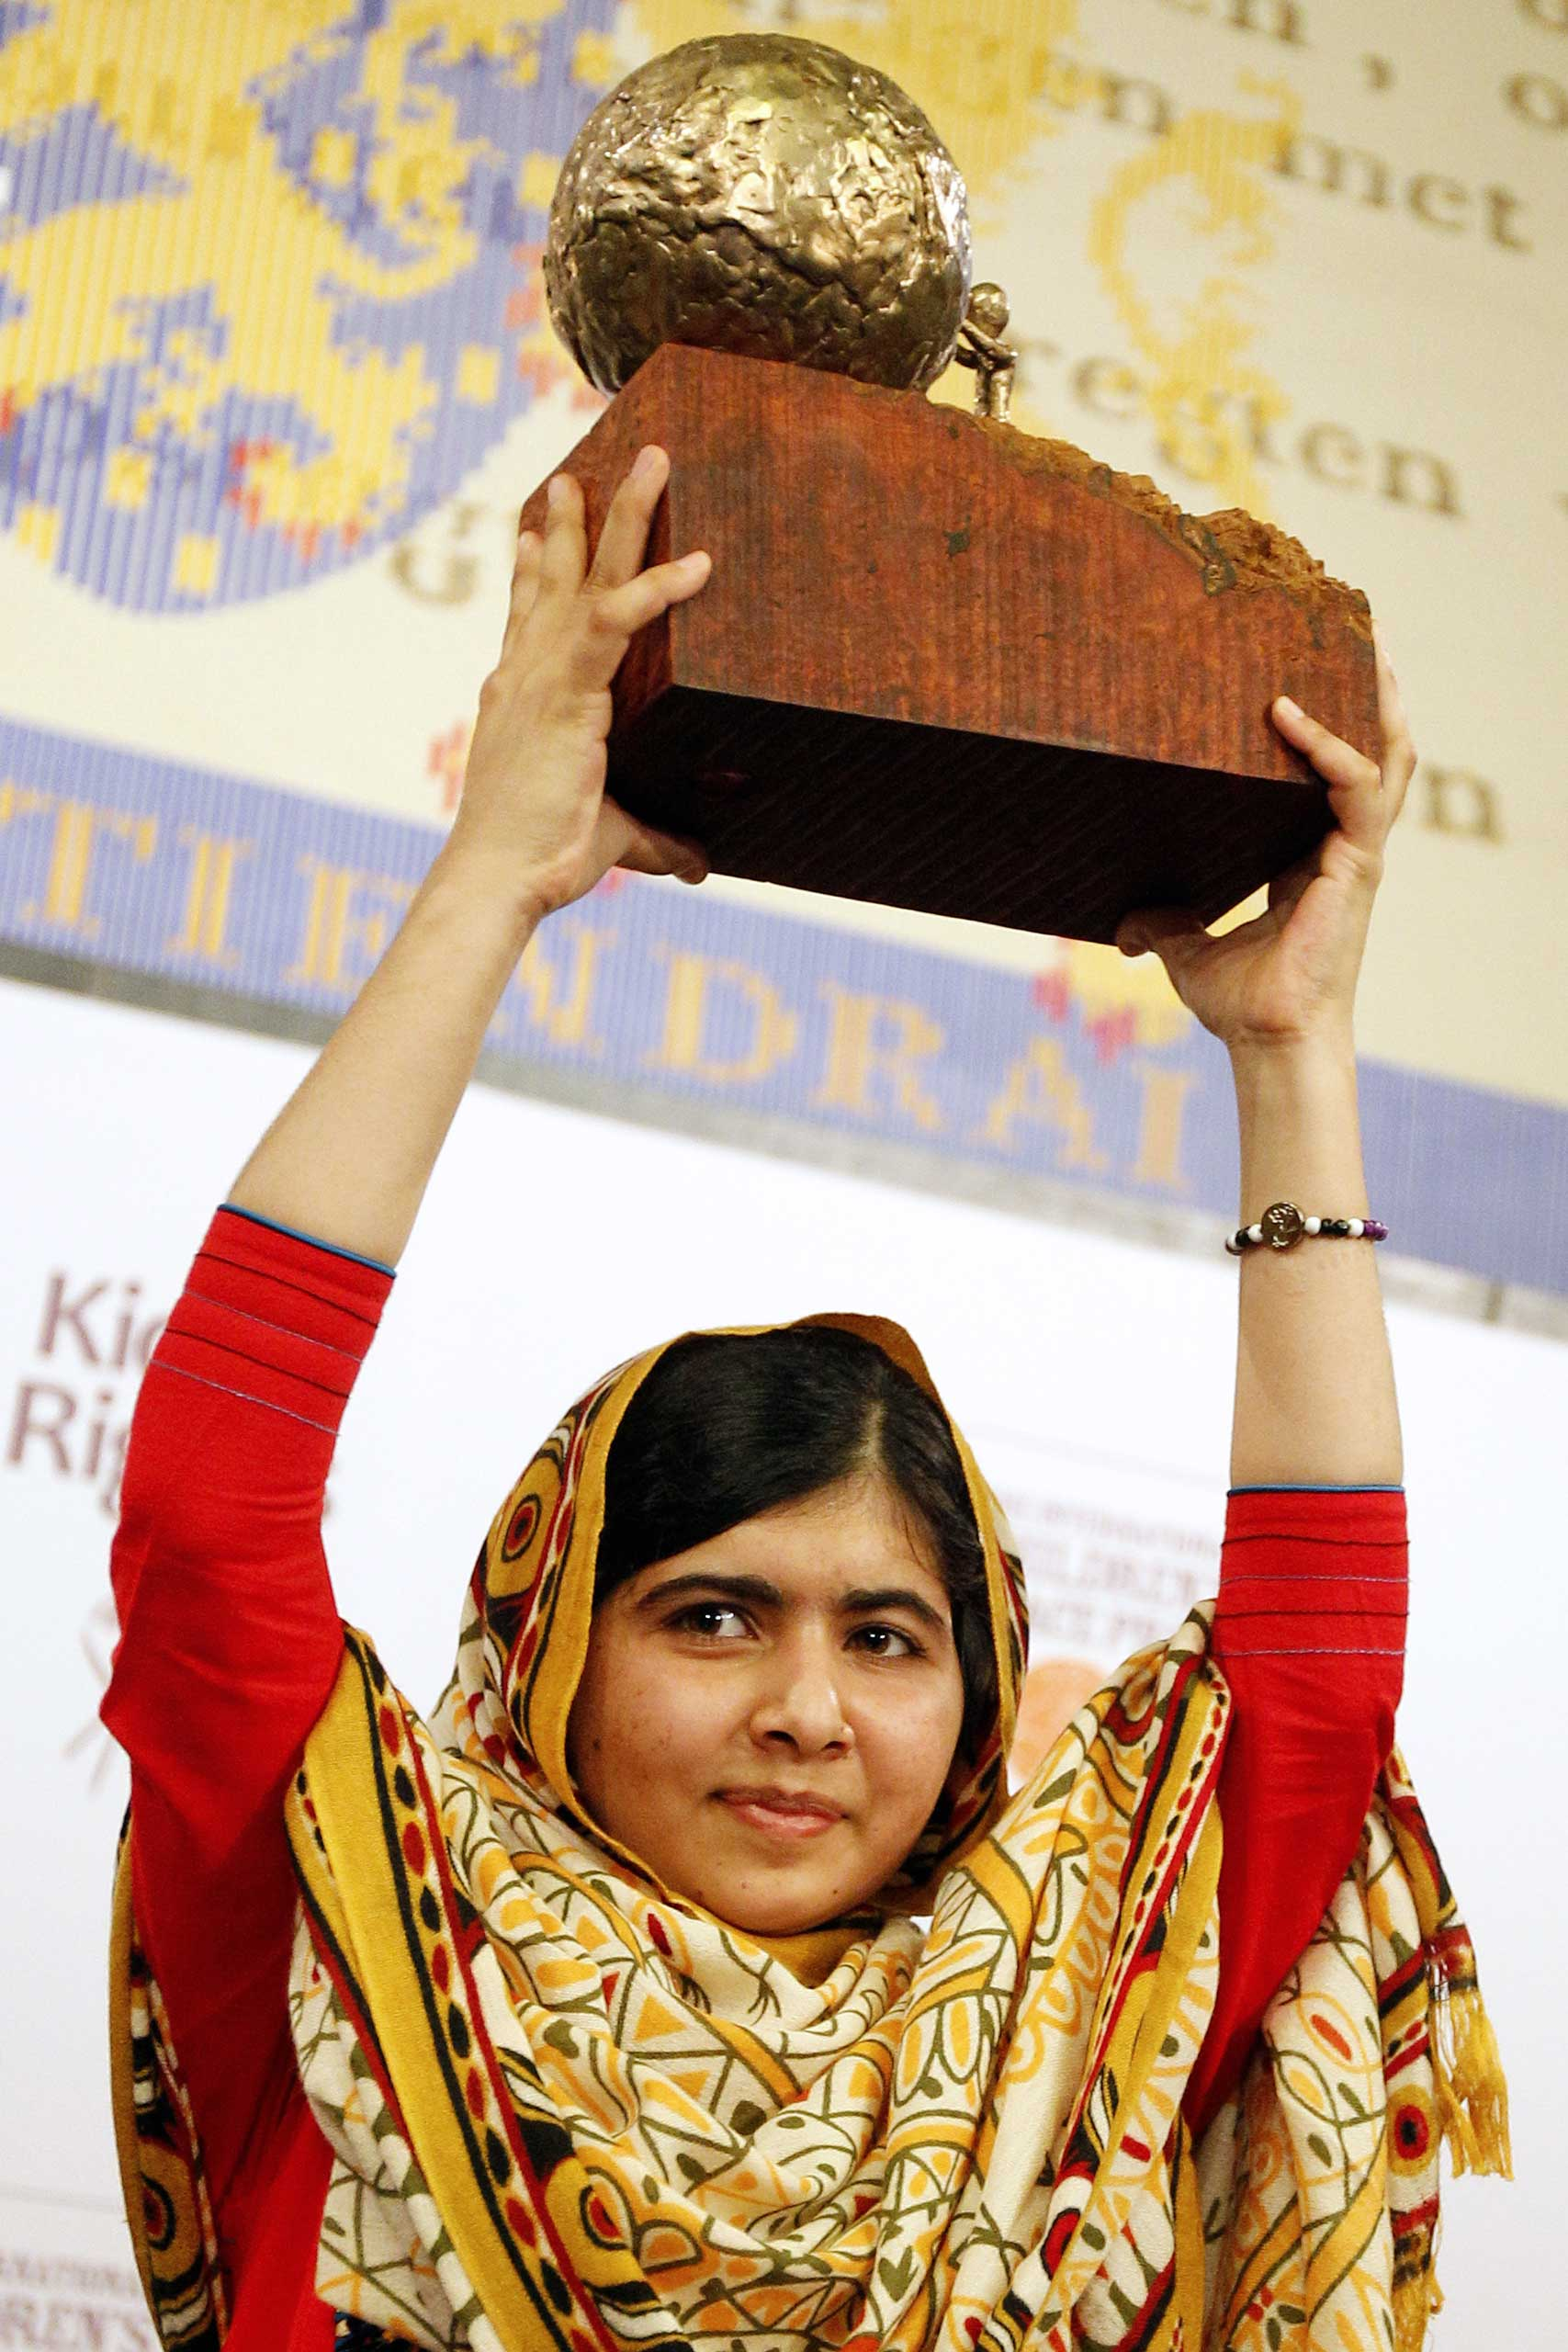 Malala Yousafzai raises a trophy after being honored with the International Children's Peace Prize in the Netherlands, on Sept. 6, 2013.